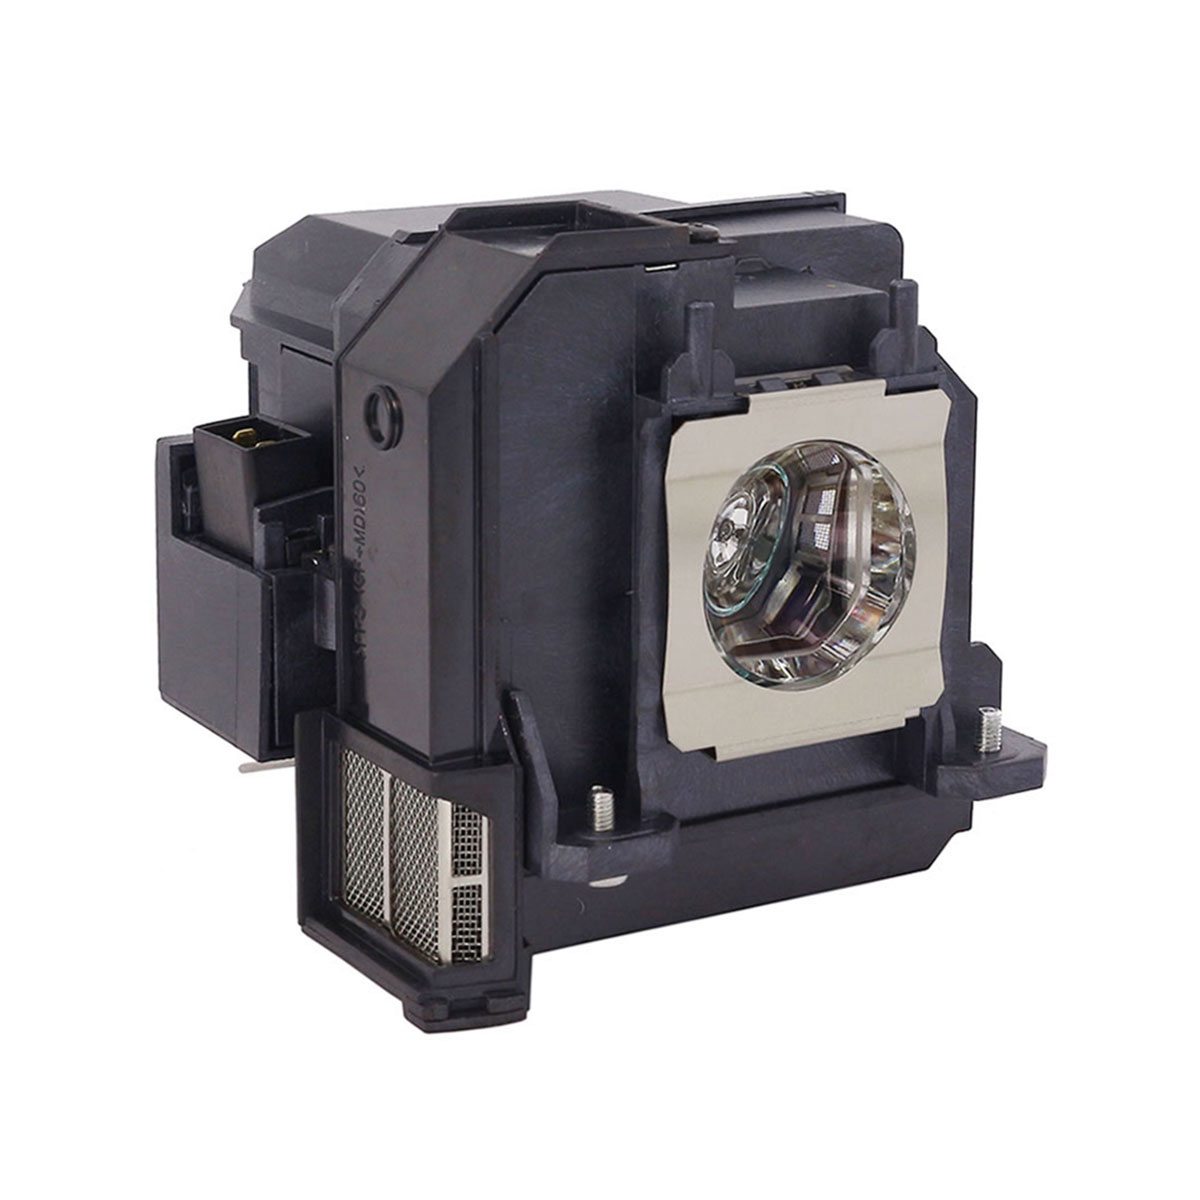 Original Philips Projector Lamp Replacement with Housing for Epson ELPLP80 - image 1 de 5